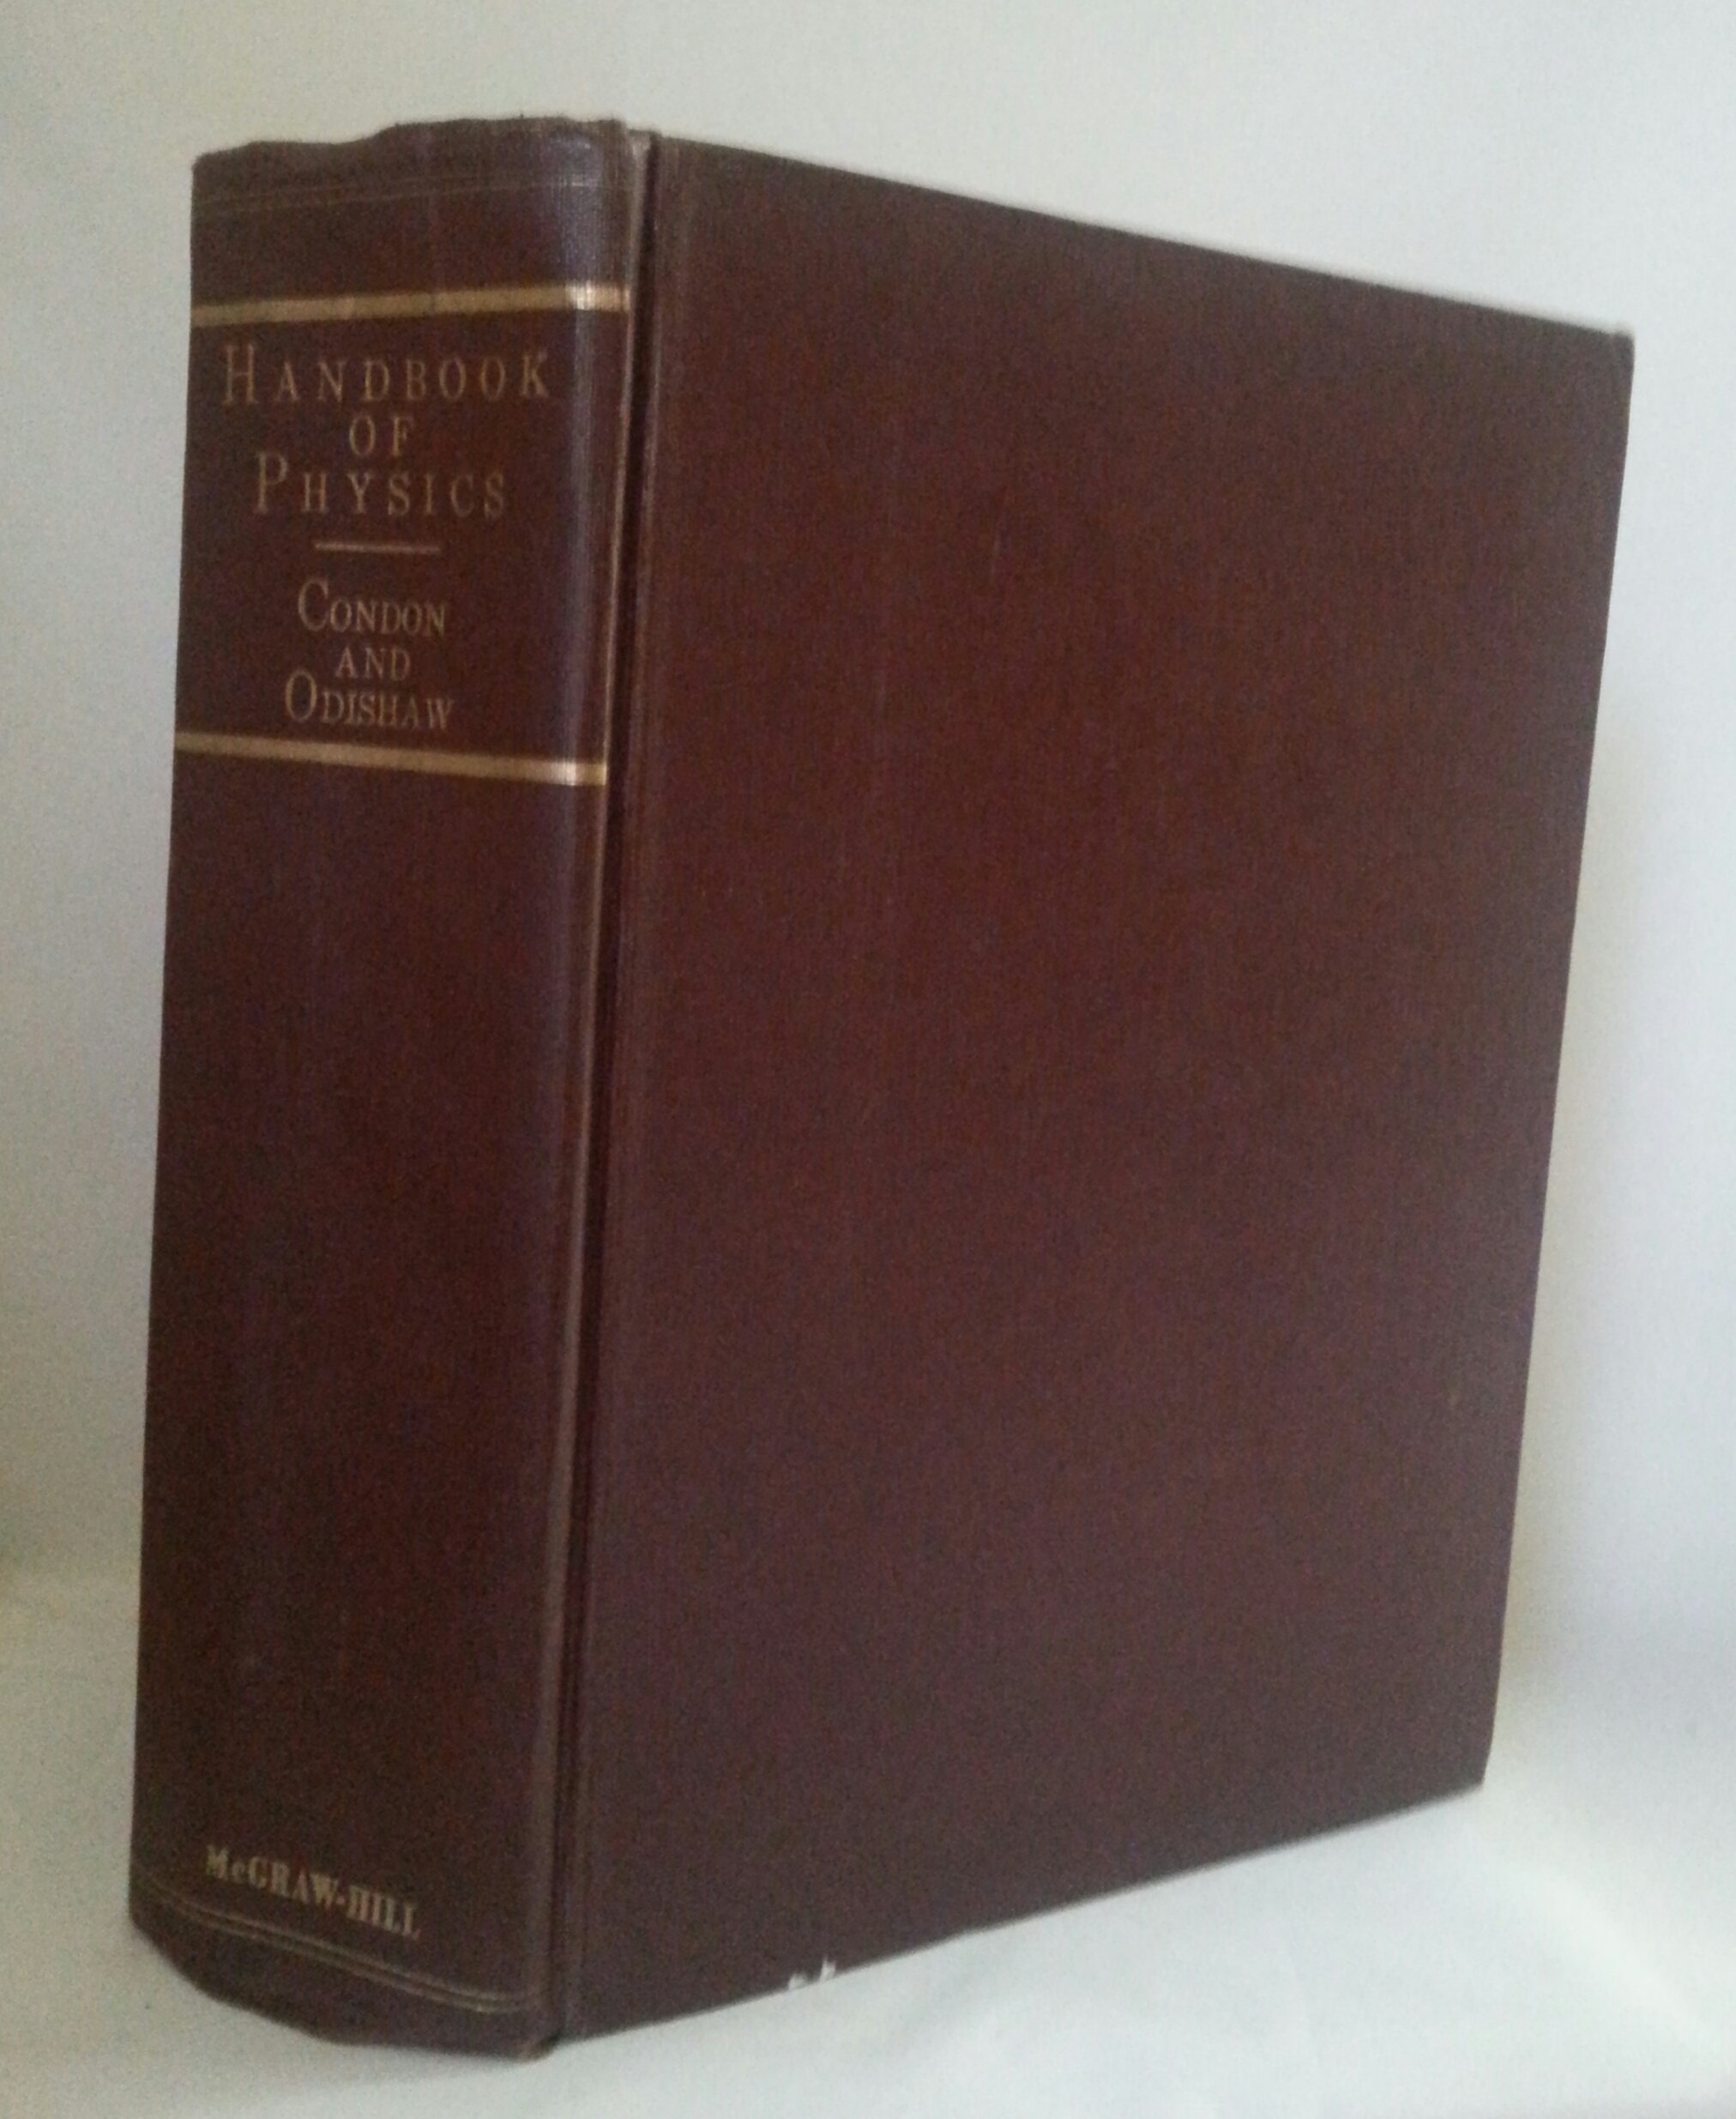 Handbook of Physics, E. U. Condon Editor